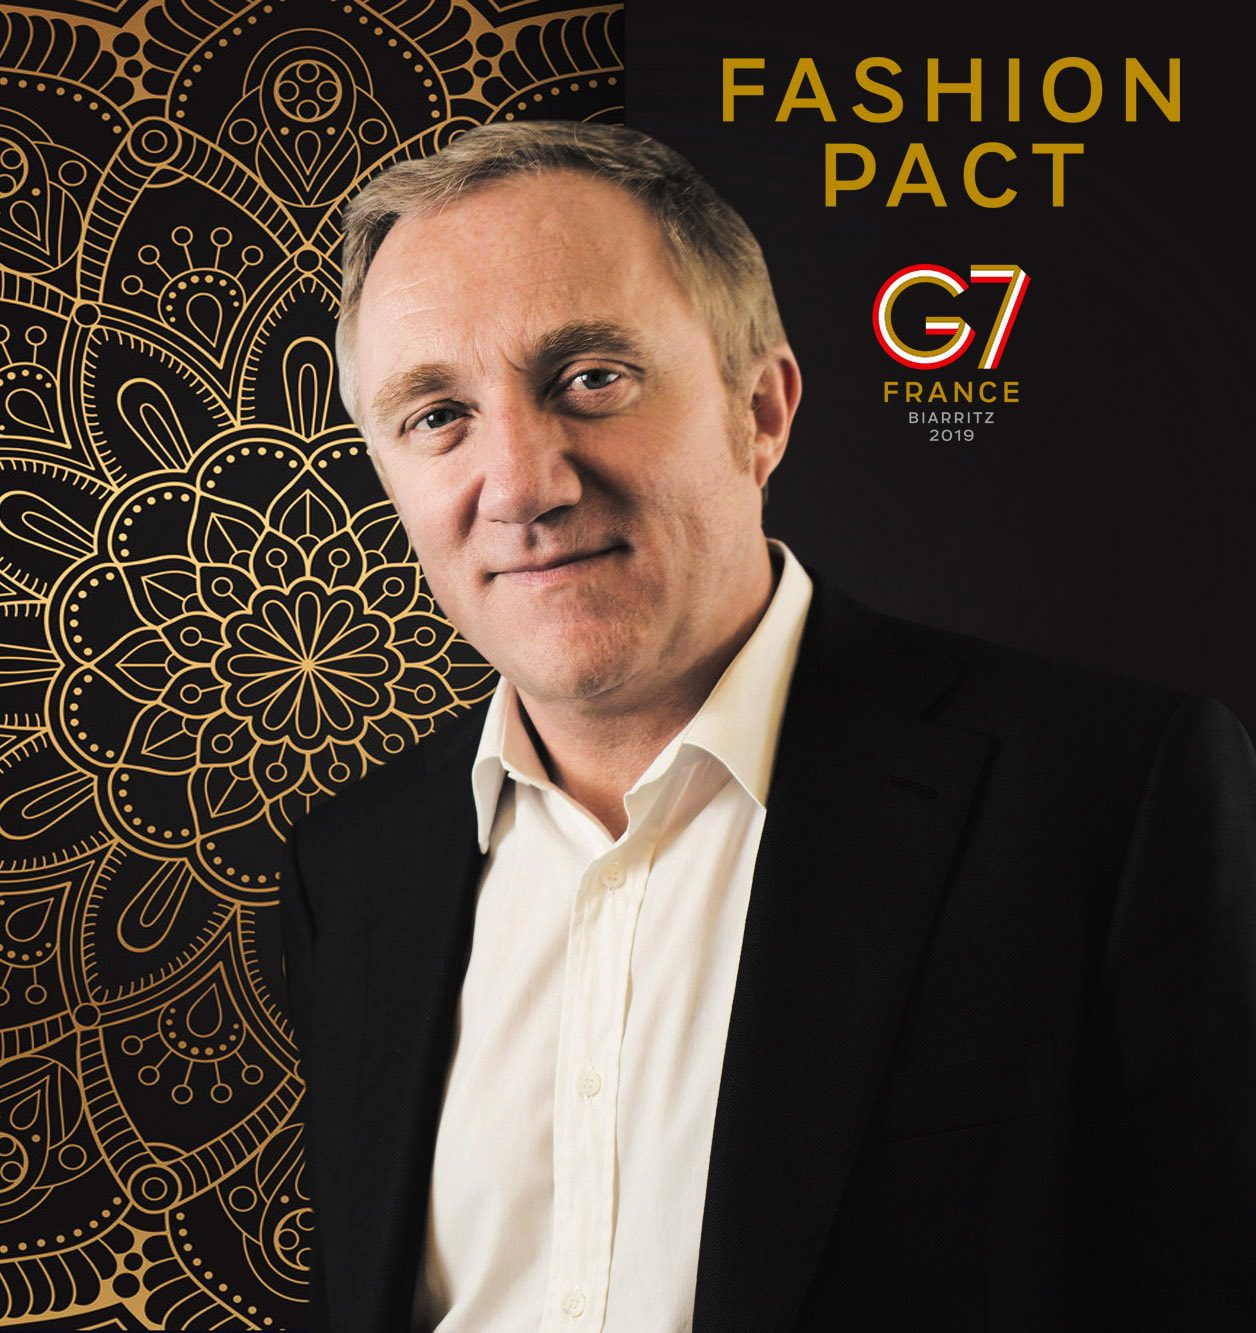 Francois Henri Pinault - Fashion Pact G7 Biarritz 2019 - feature of luxury